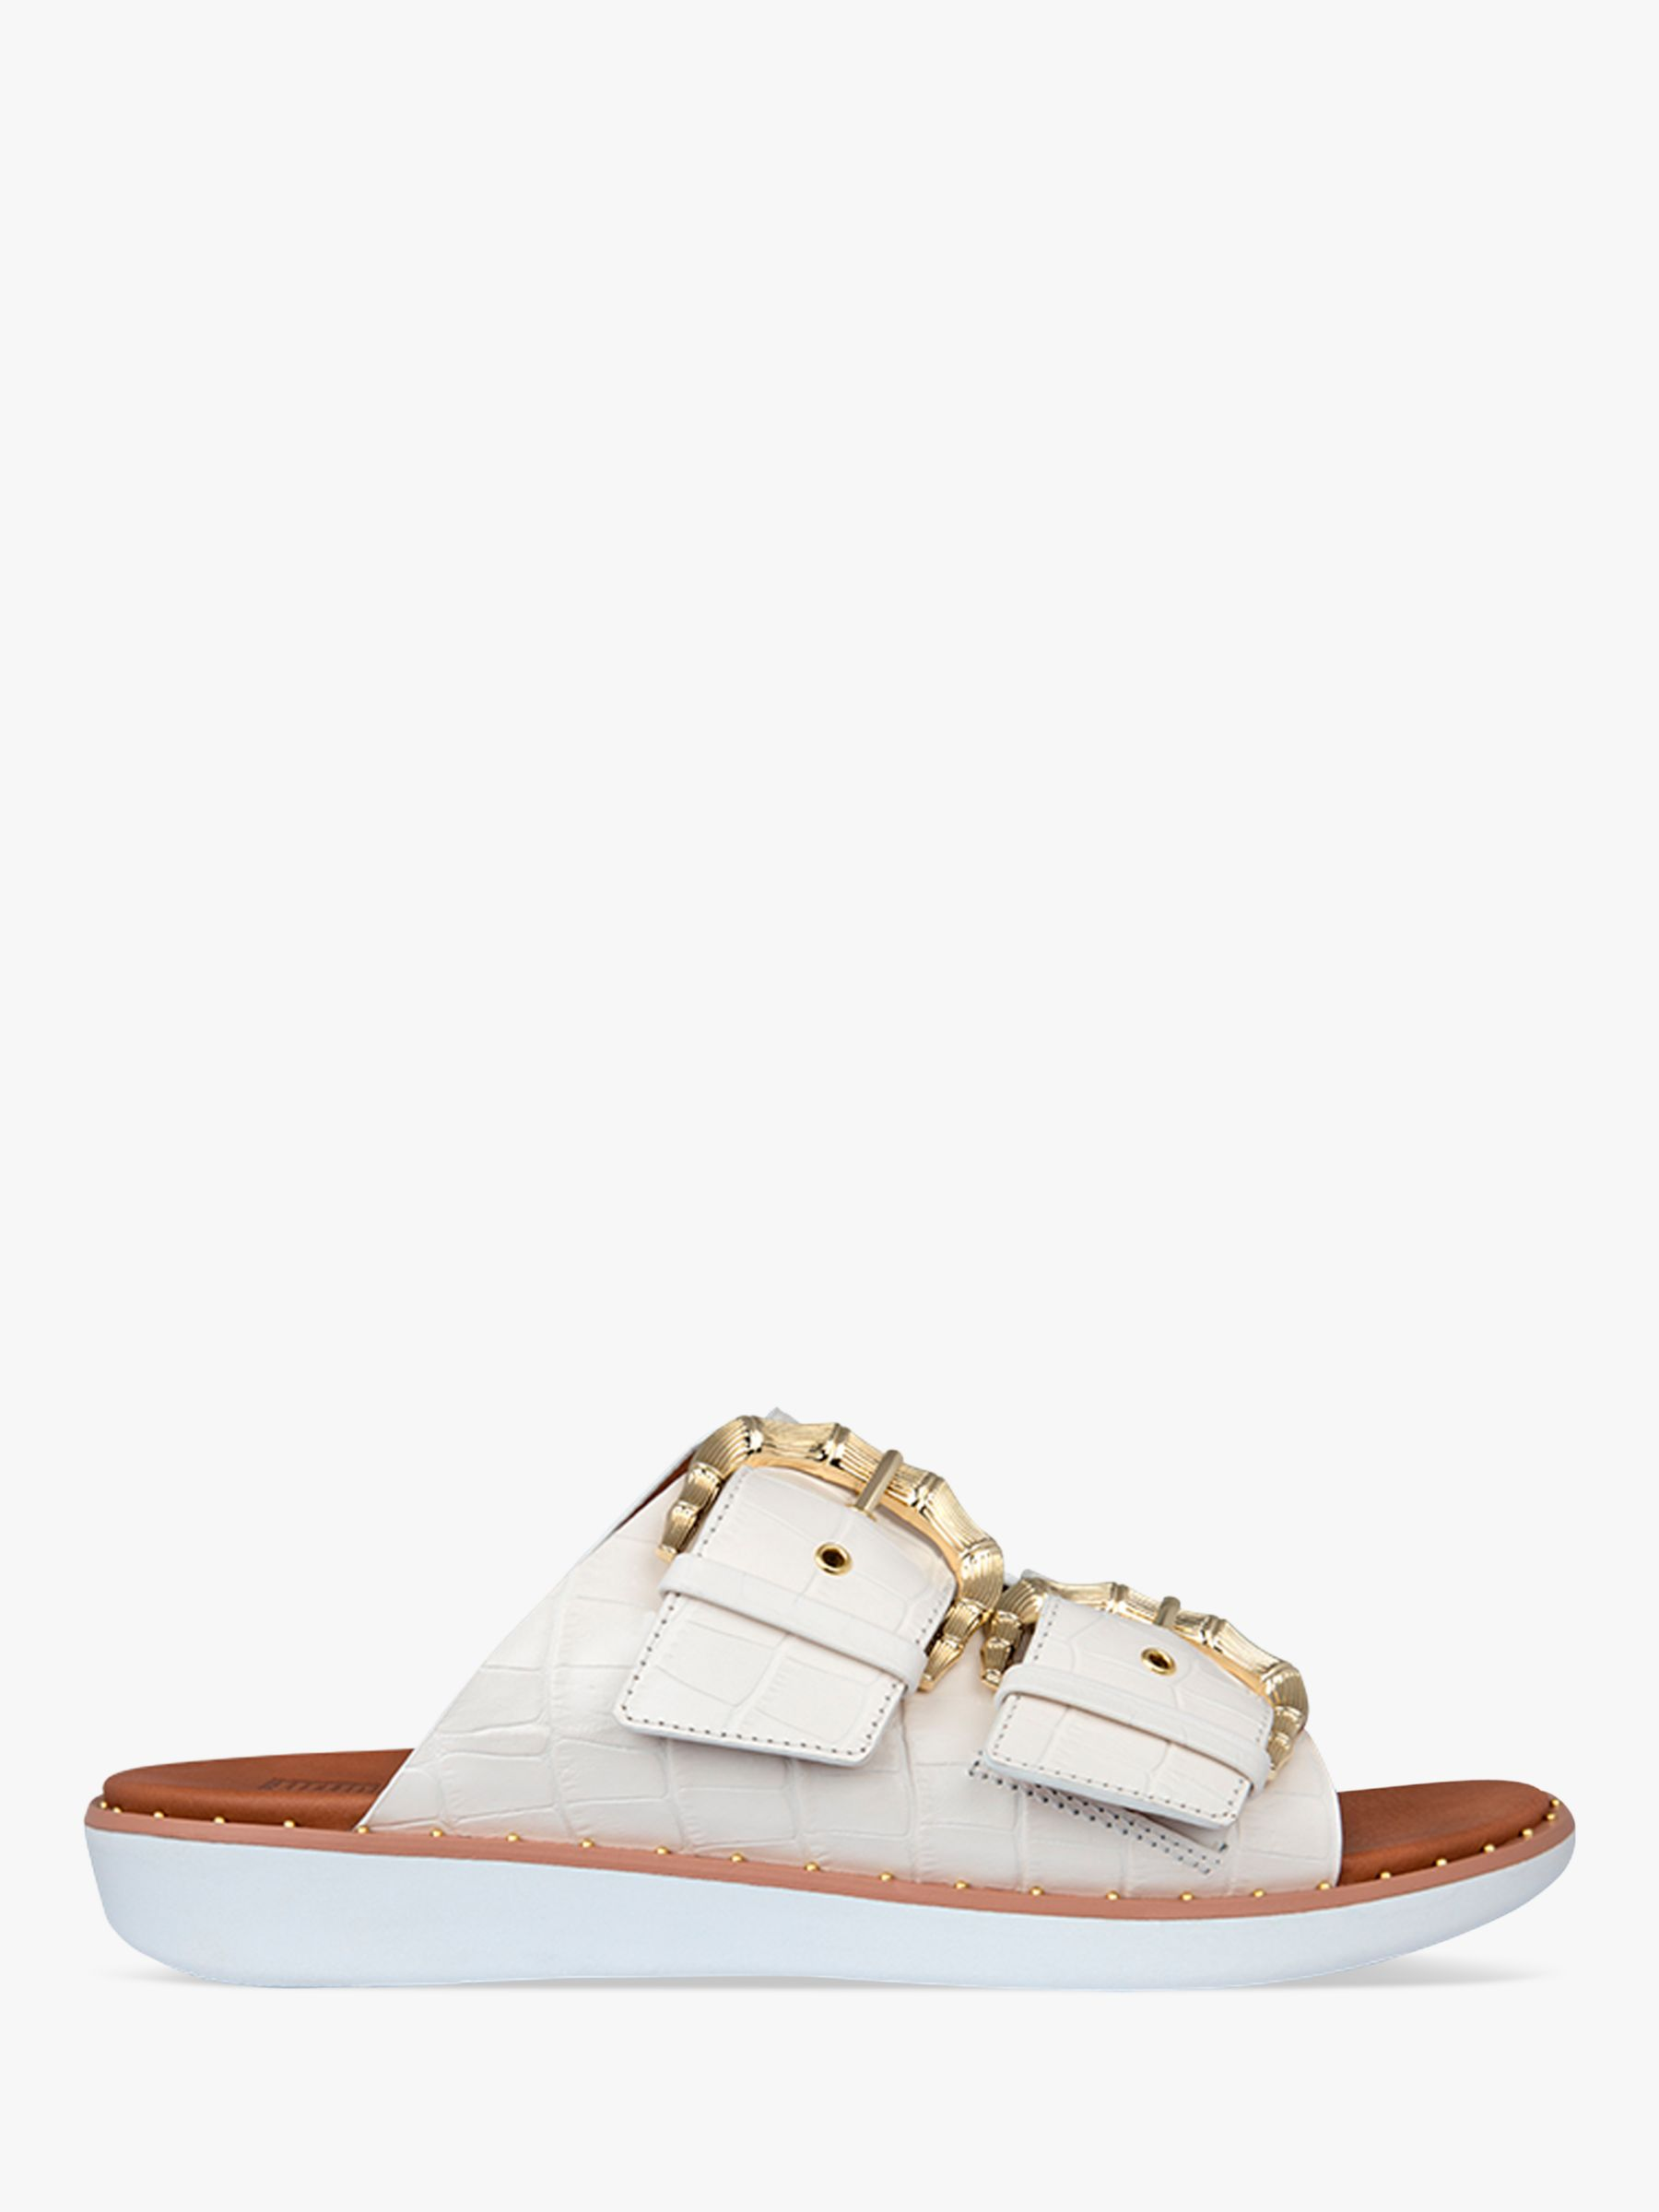 Fitflop FitFlop Kaia Croc Print Leather Slides, White